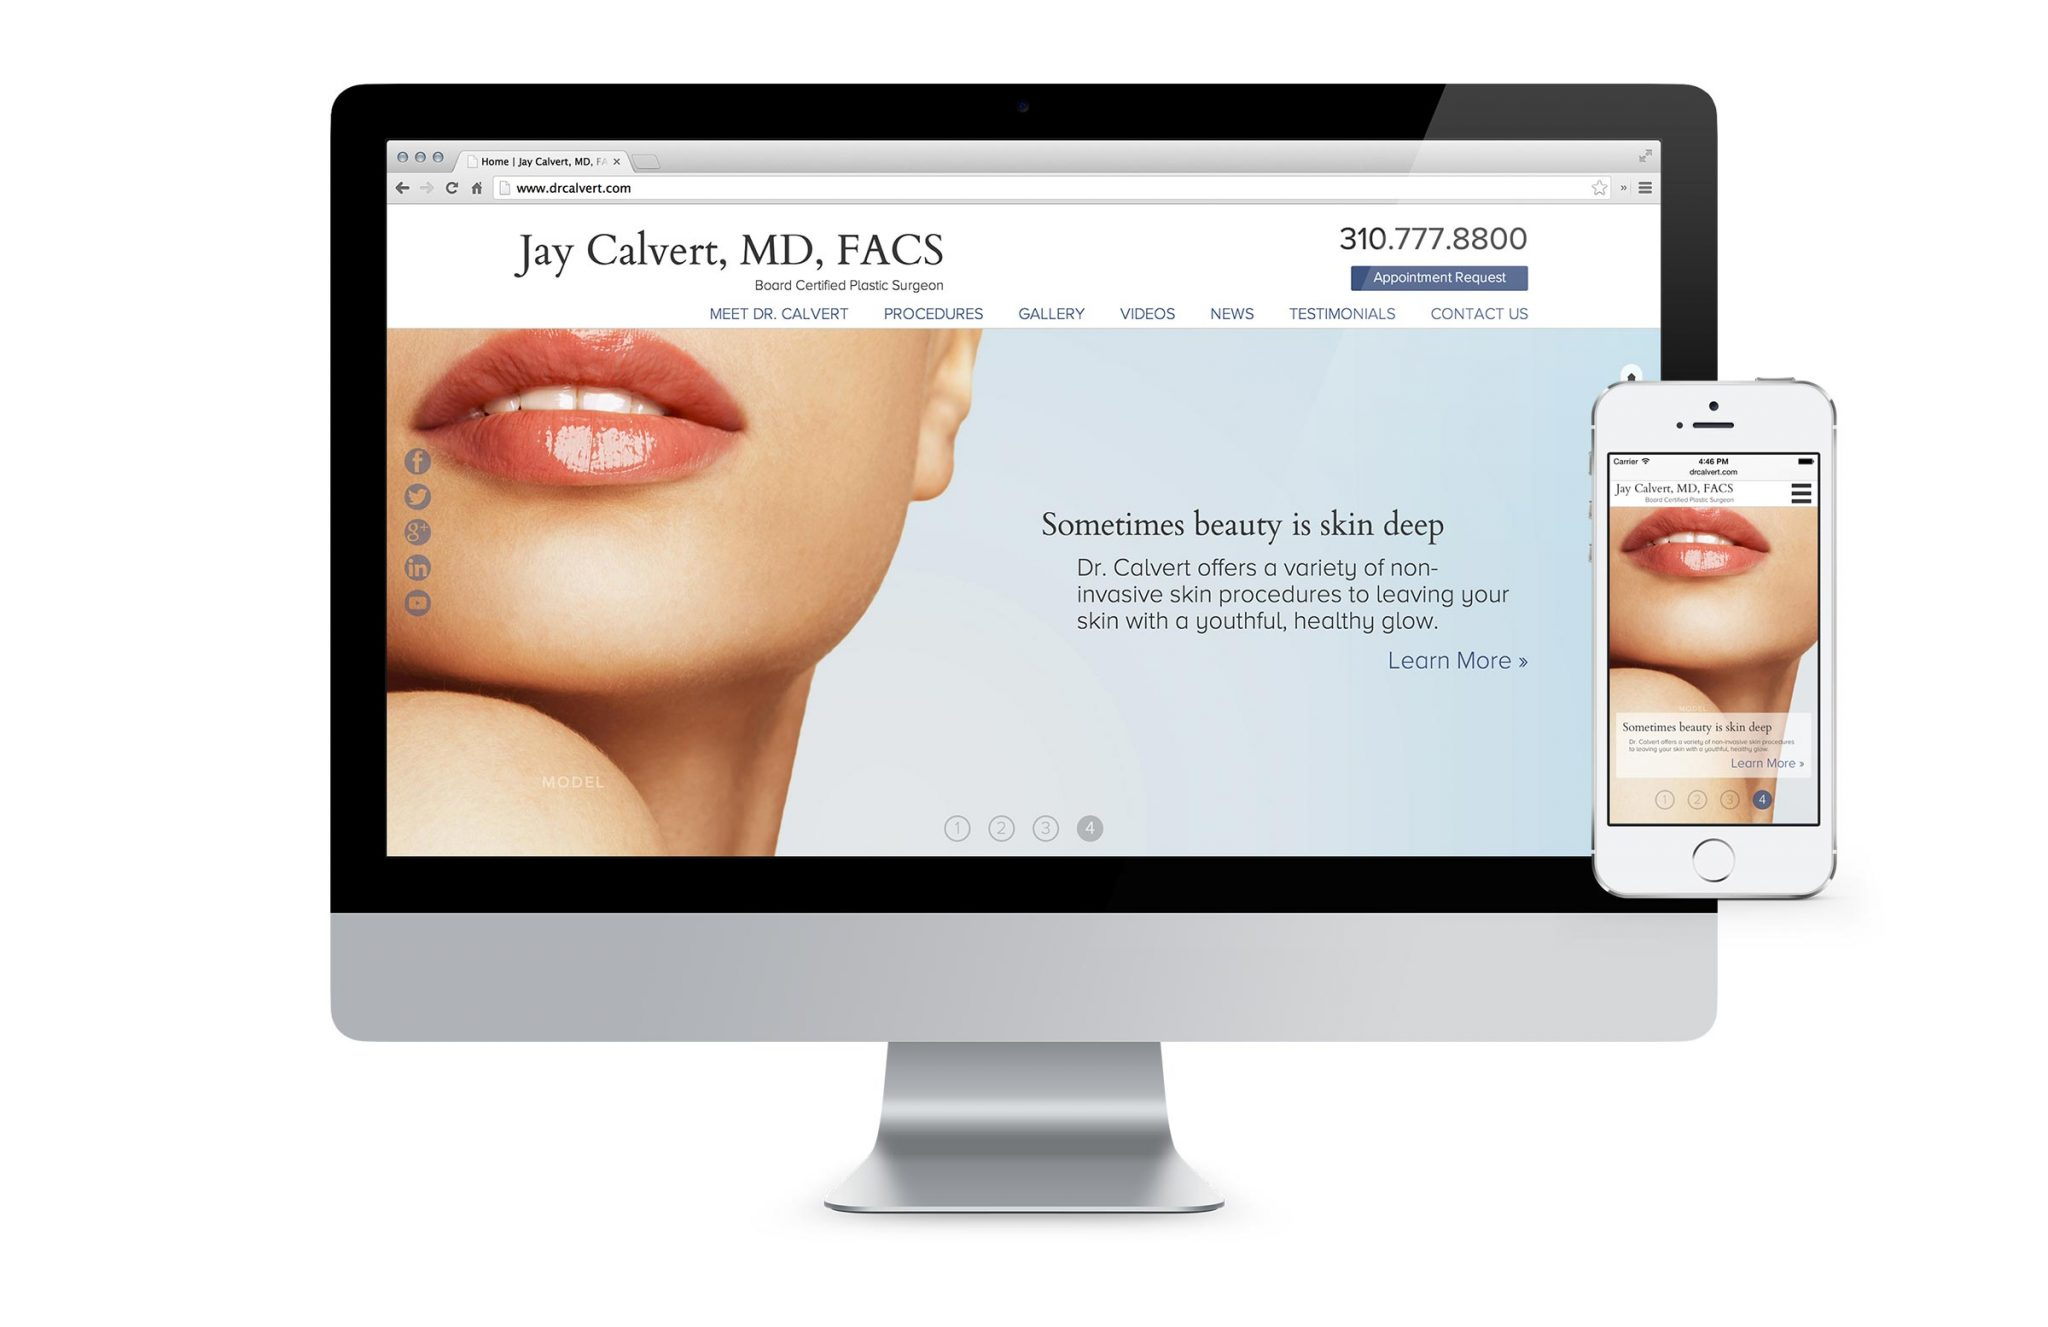 jay calvert md facs web development isimplifyme home page